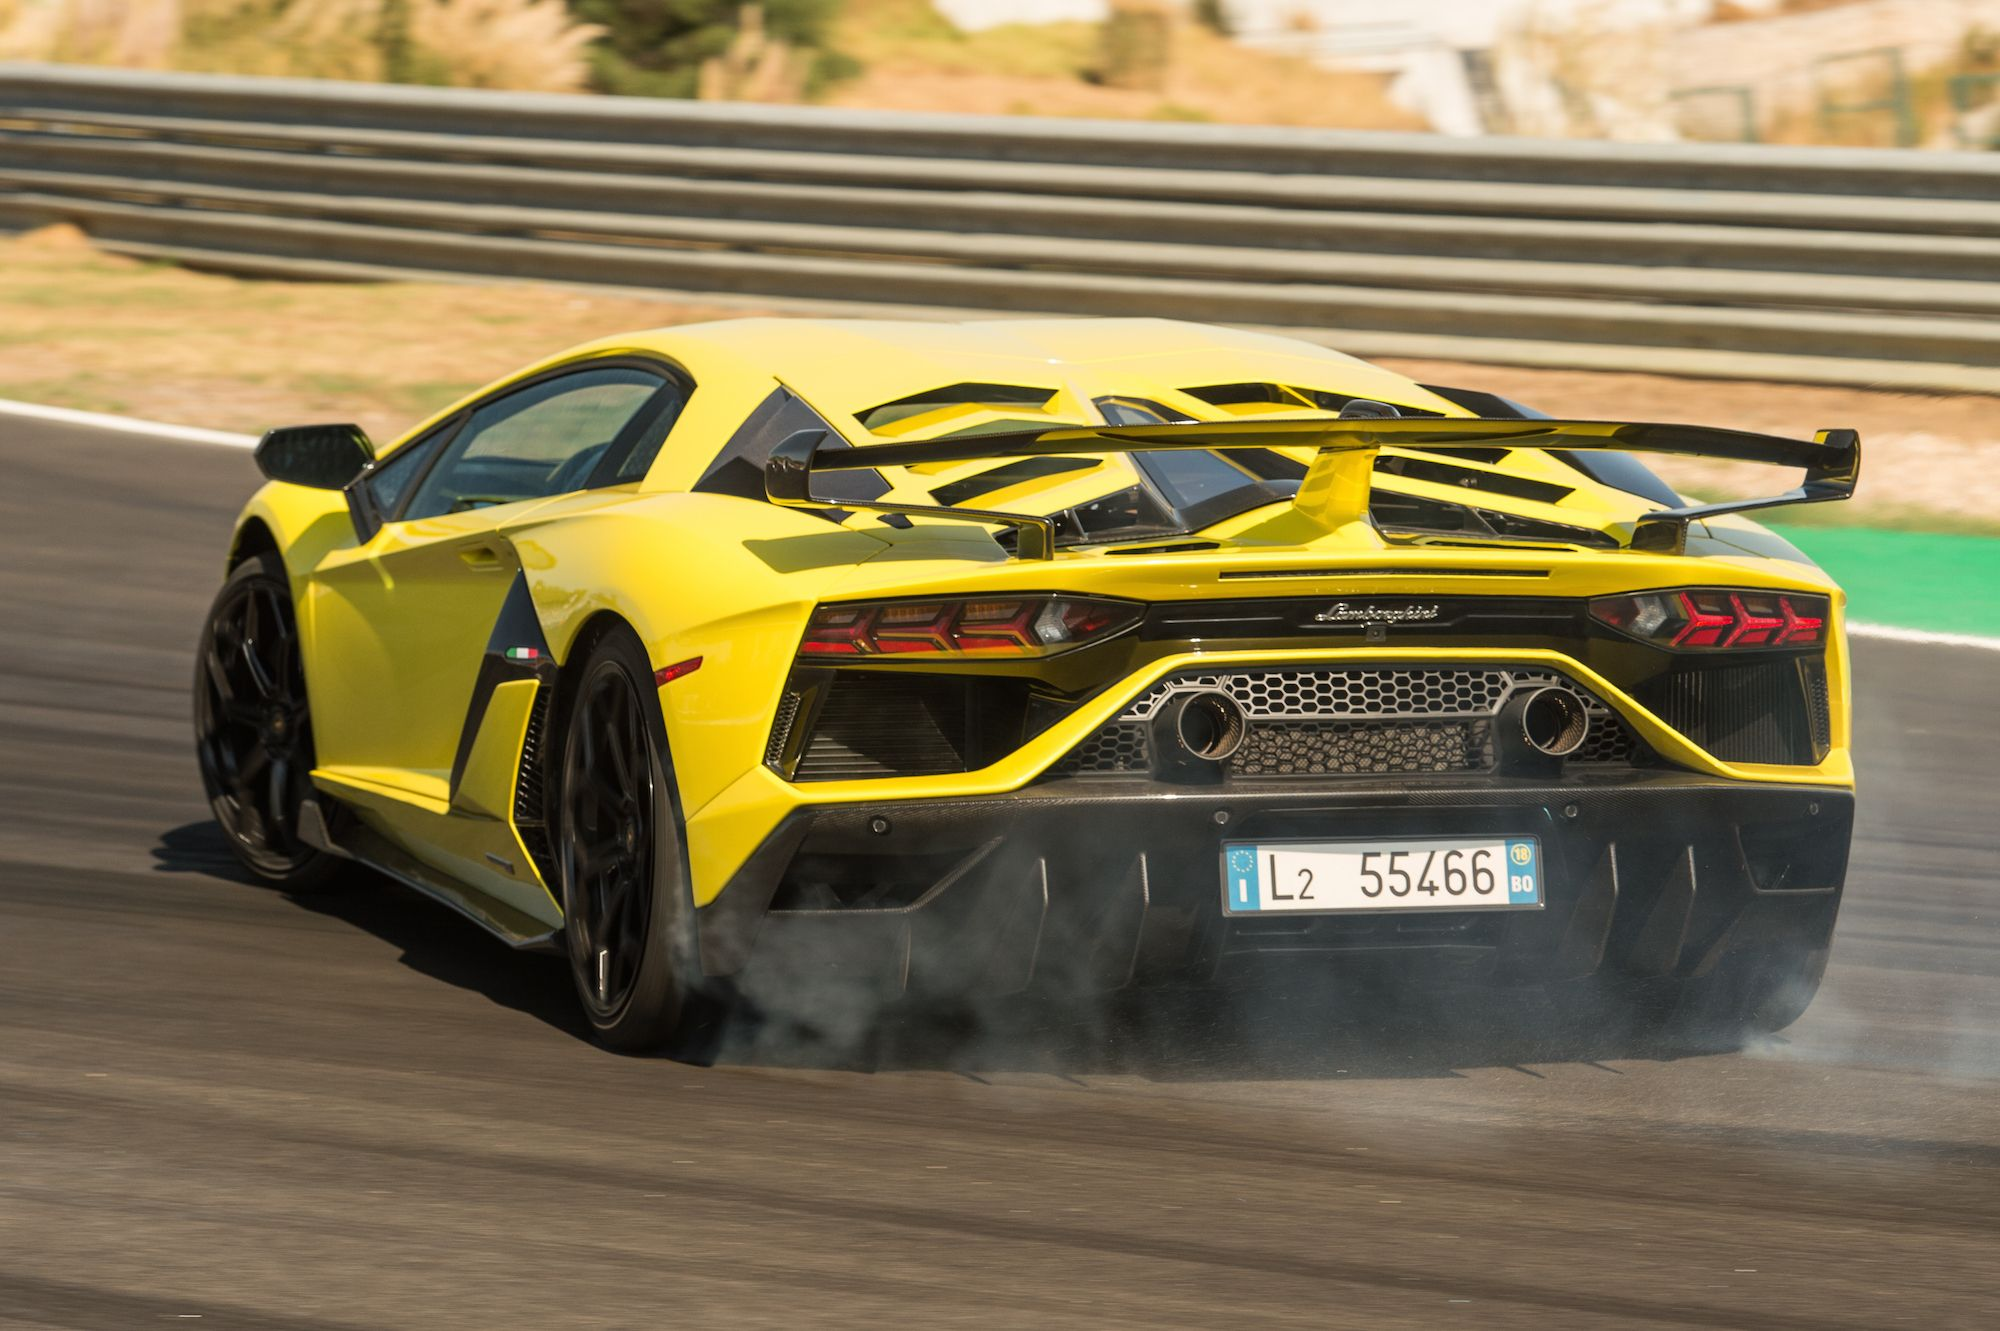 The Lamborghini Aventador Svj Is A 770hp Terror Test Drive And Review